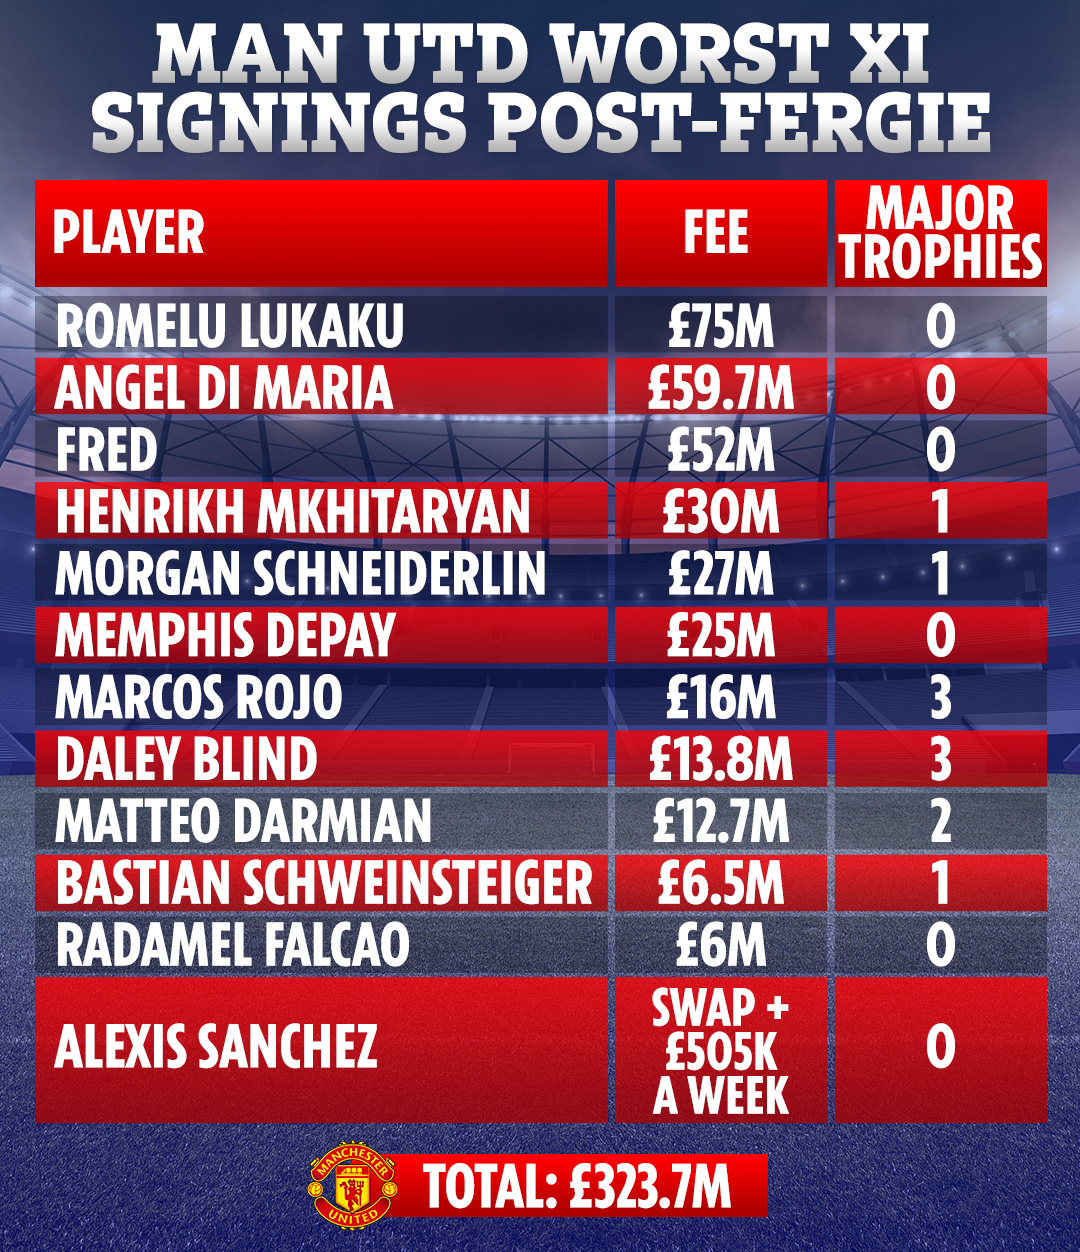 Man Utd's worst signings XI post-Sir Alex, including Fred, Di Maria and Depay that cost an amazing £325m